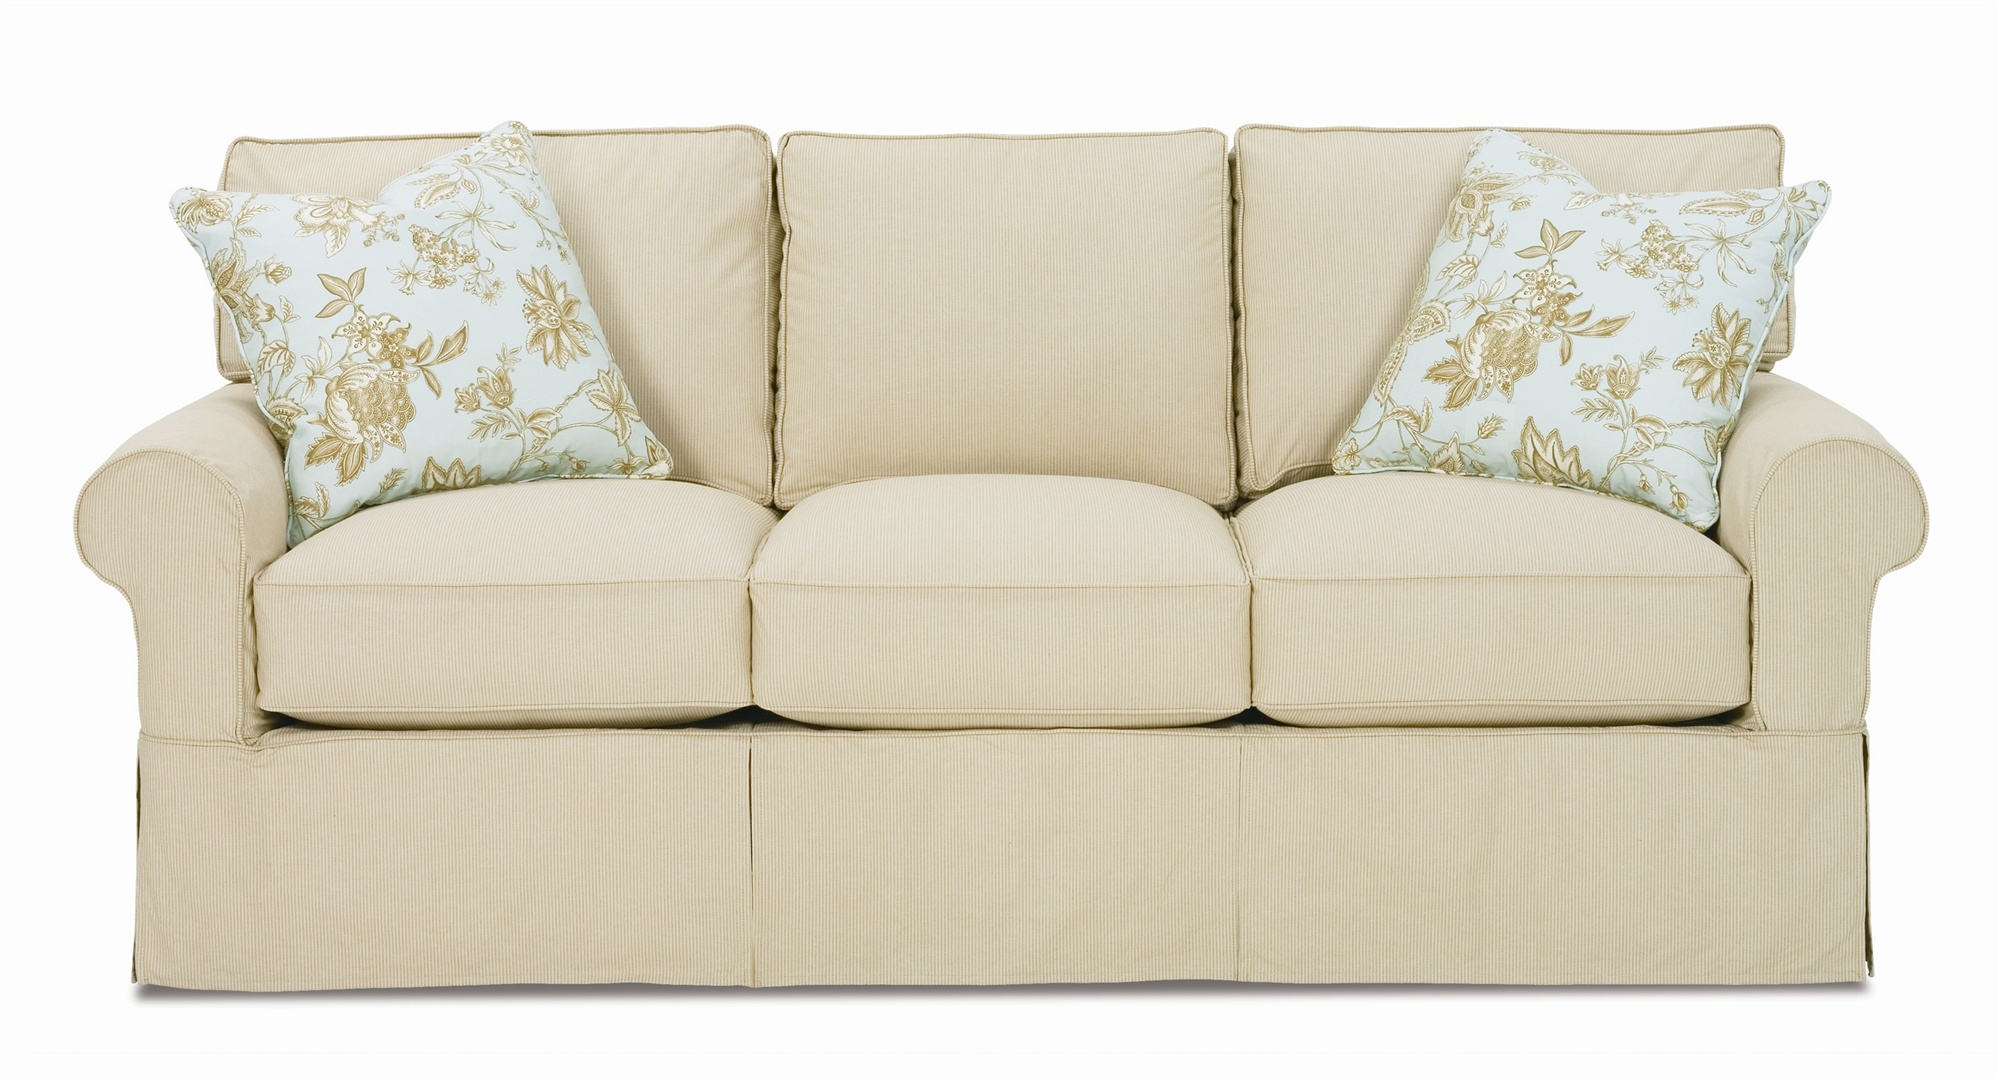 Living Room Furniture Jcpenney pottery barn sofa covers. gallery of the elegant pottery barn sofa